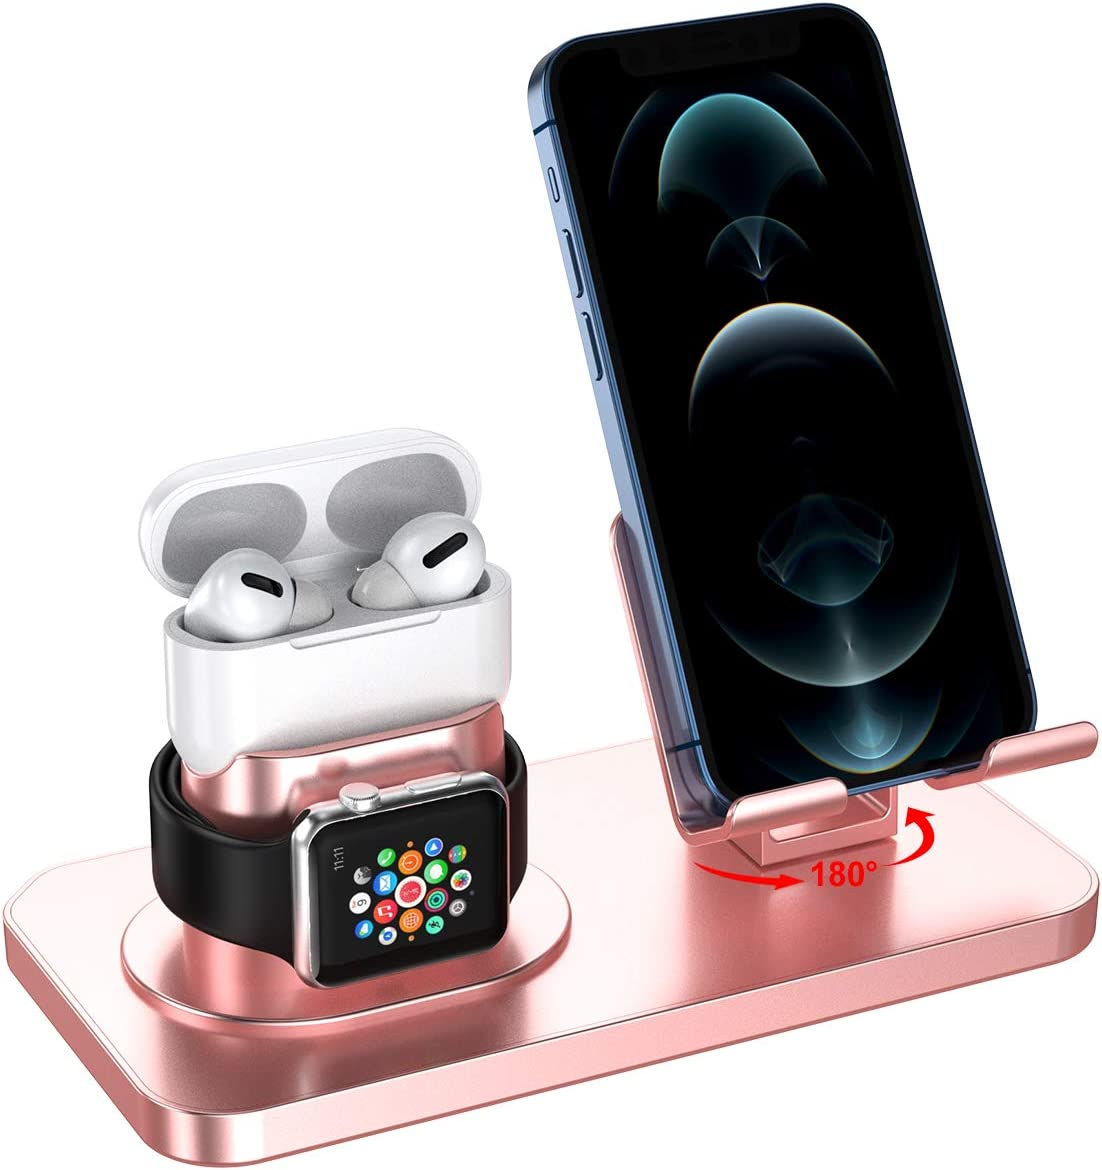 JSDTHL Stand Compatible with Apple Watch Series 6/5/4/3/2/1/SE, iPhone 12 Pro/12/11/X/XR/8/8 Plus/7/7 Plus/6S/6/SE/5S/5 and Airpods Pro/3/2/1 (Rose Gold)